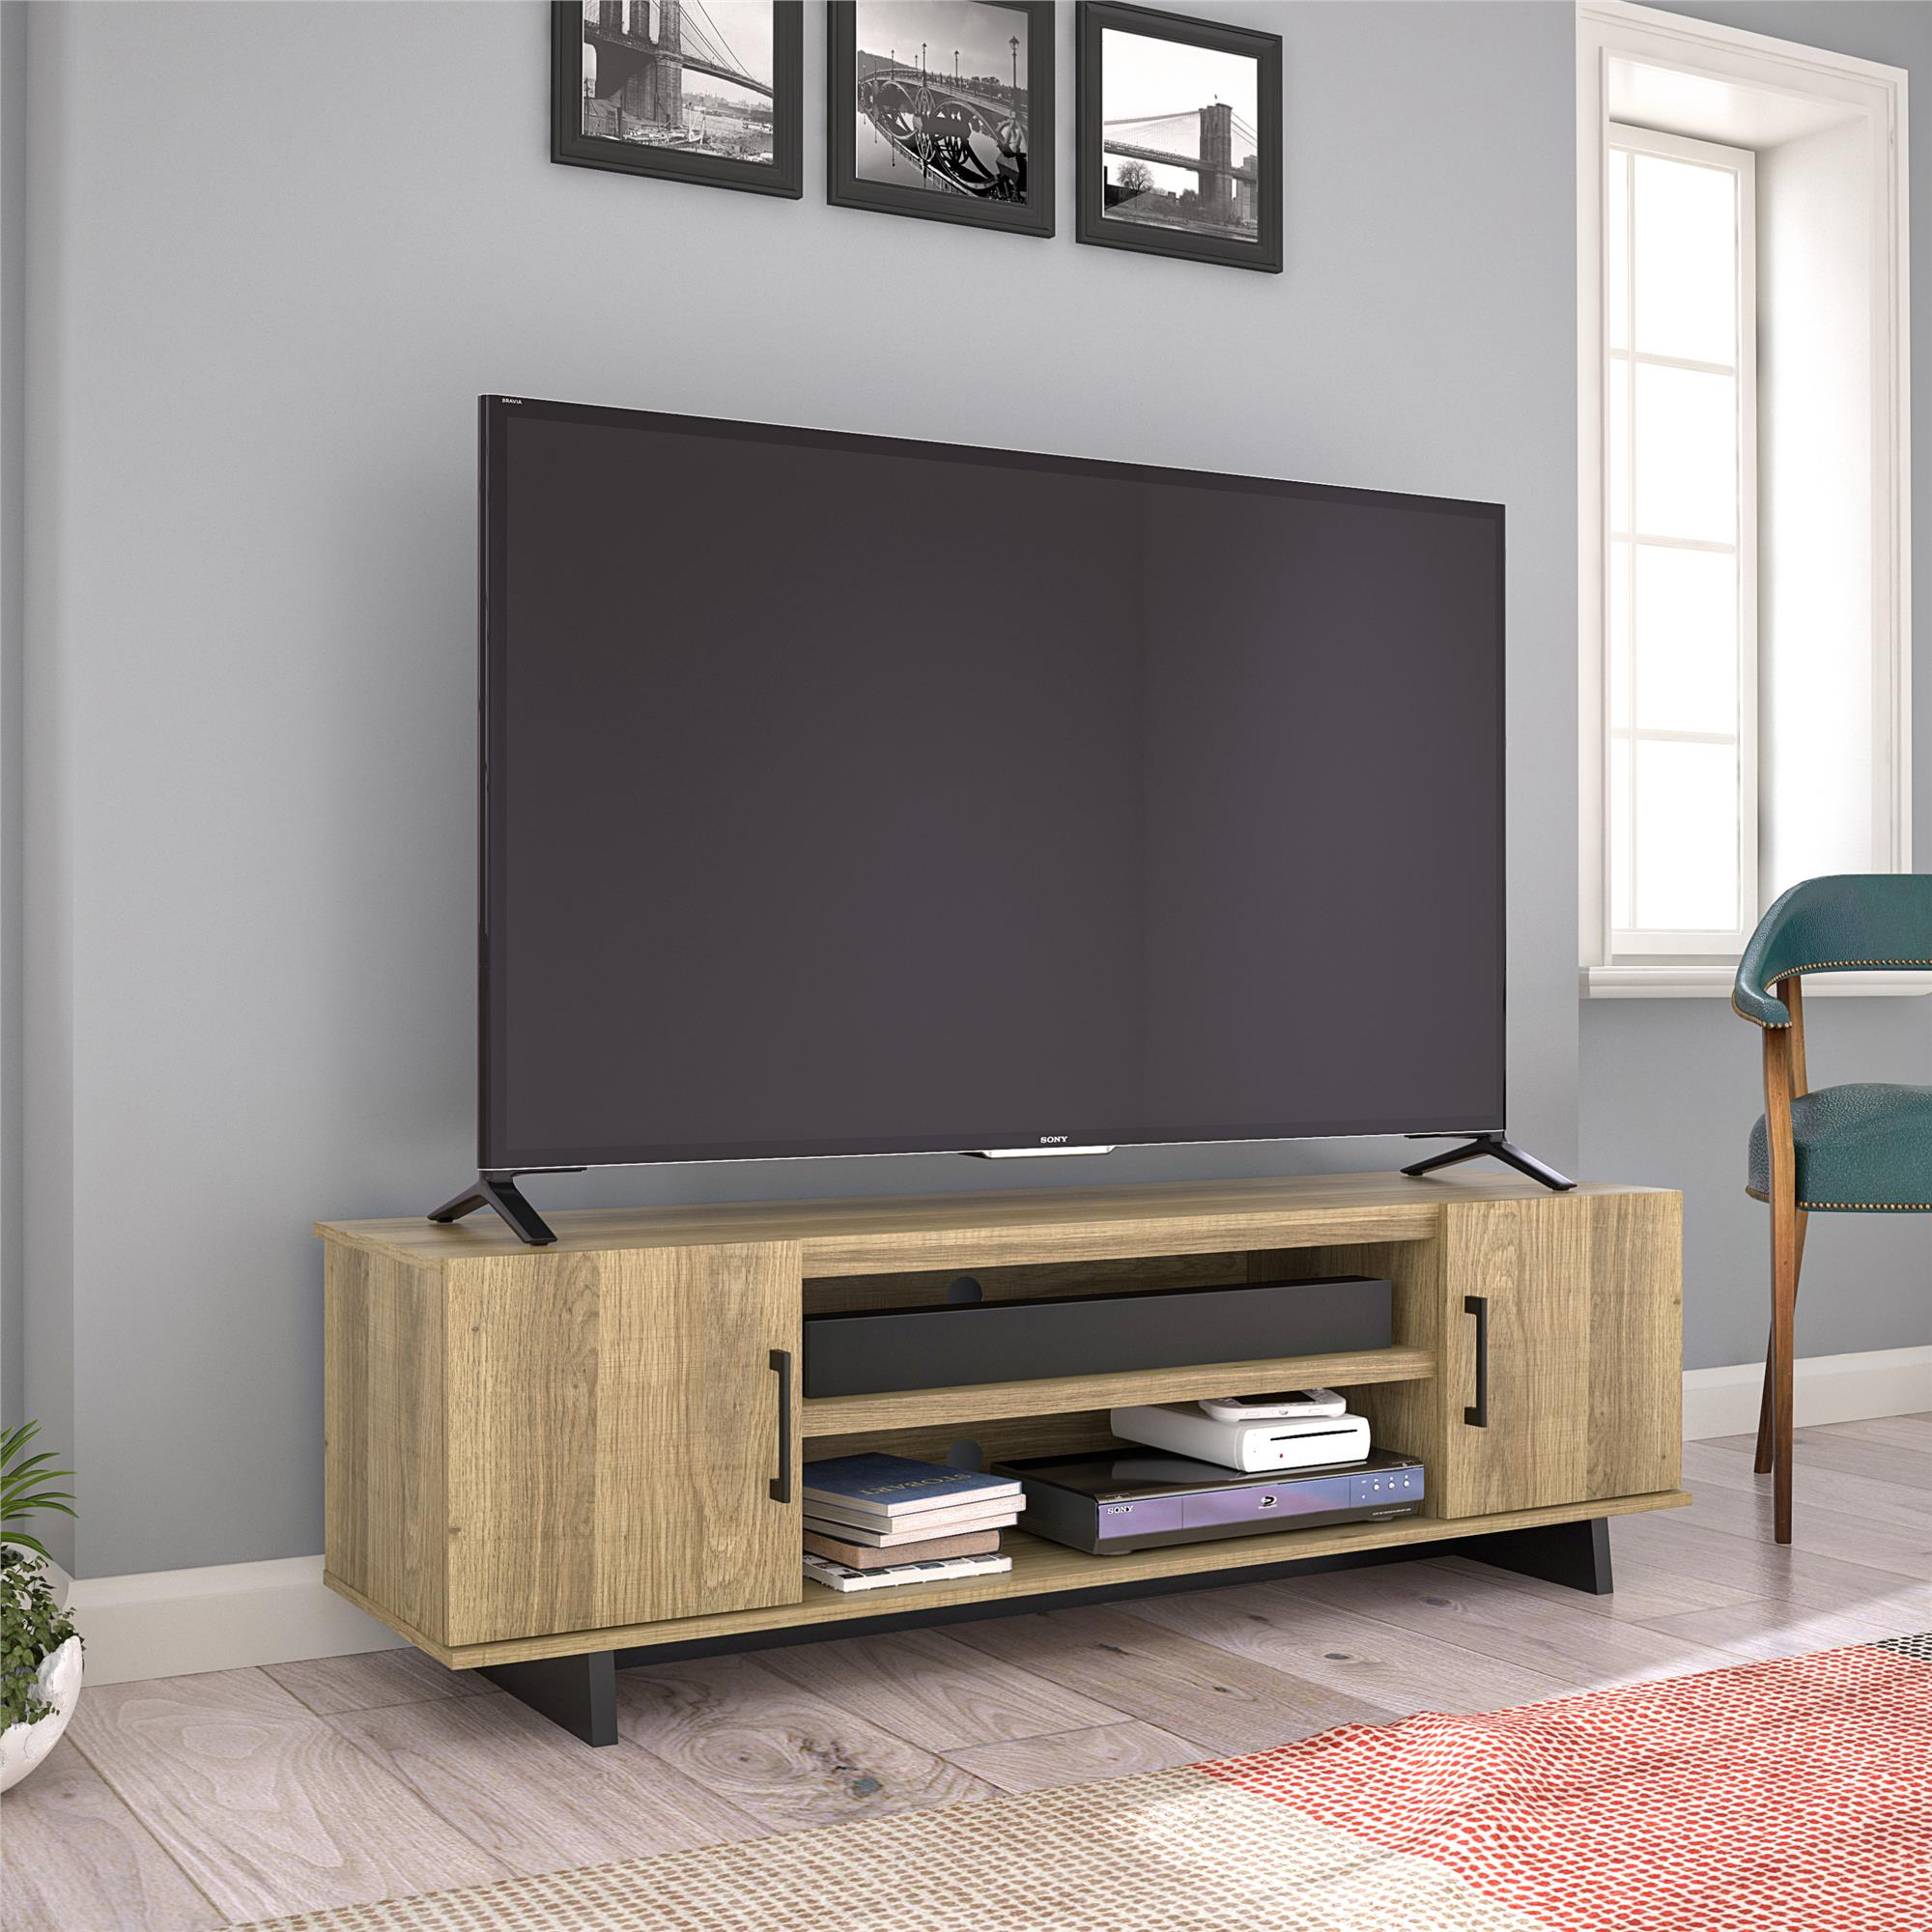 Southlander Tv Stand For Tvs Up To 65 Multiple Colors Walmart Com Walmart Com